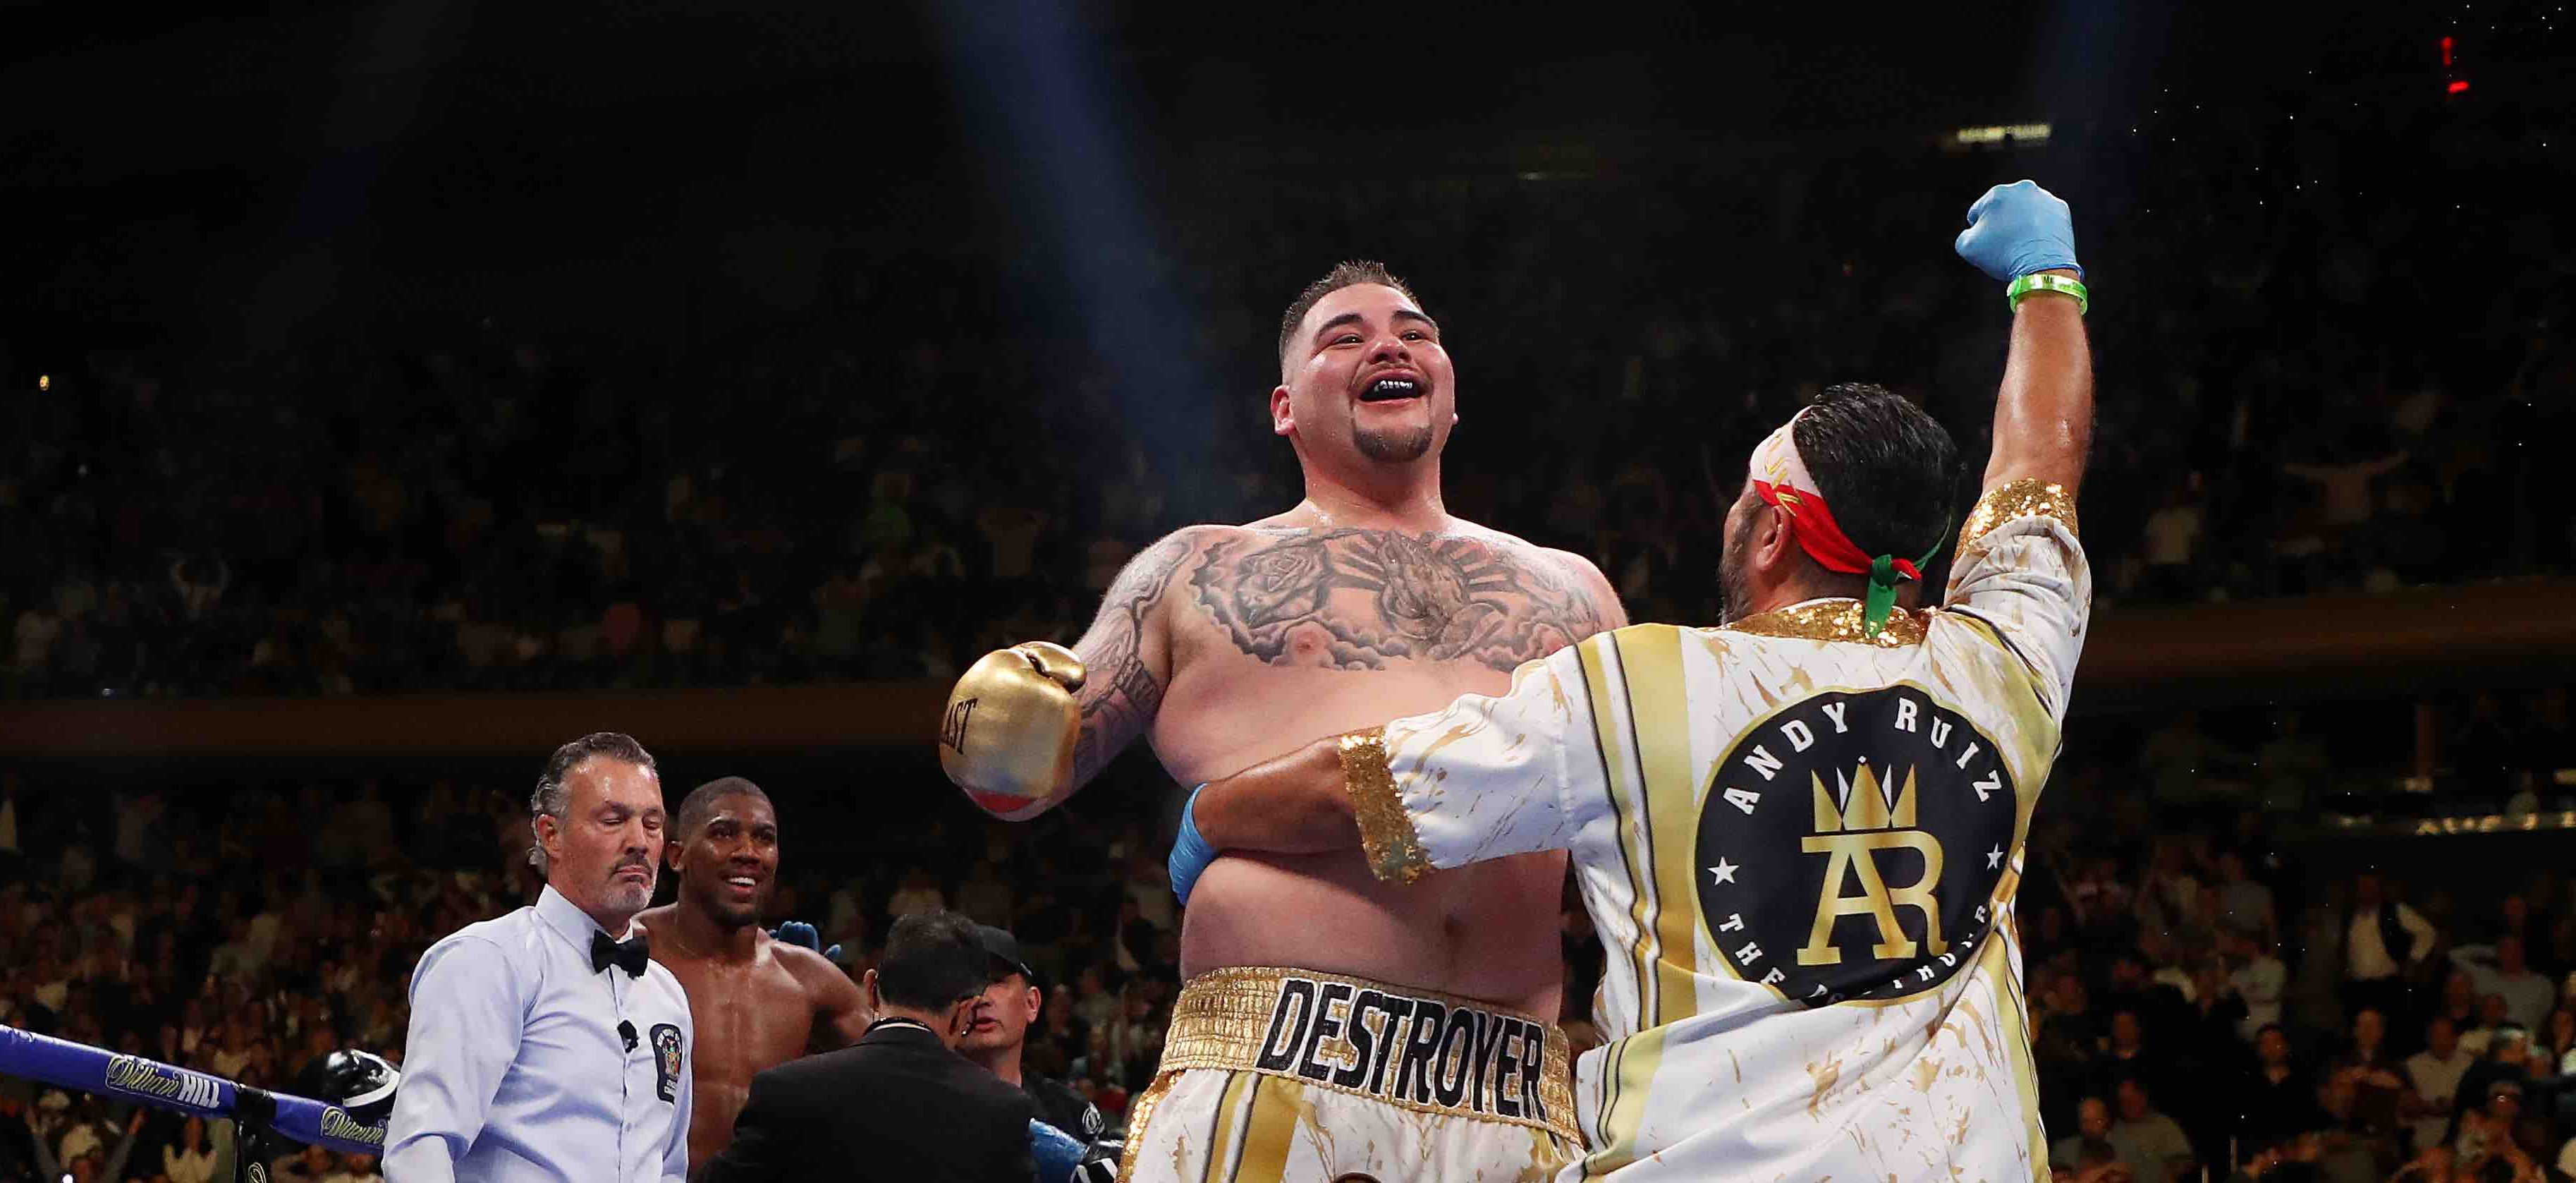 Underdog Andy Ruiz Jr. Makes History as First Mexican American Heavyweight World Champion